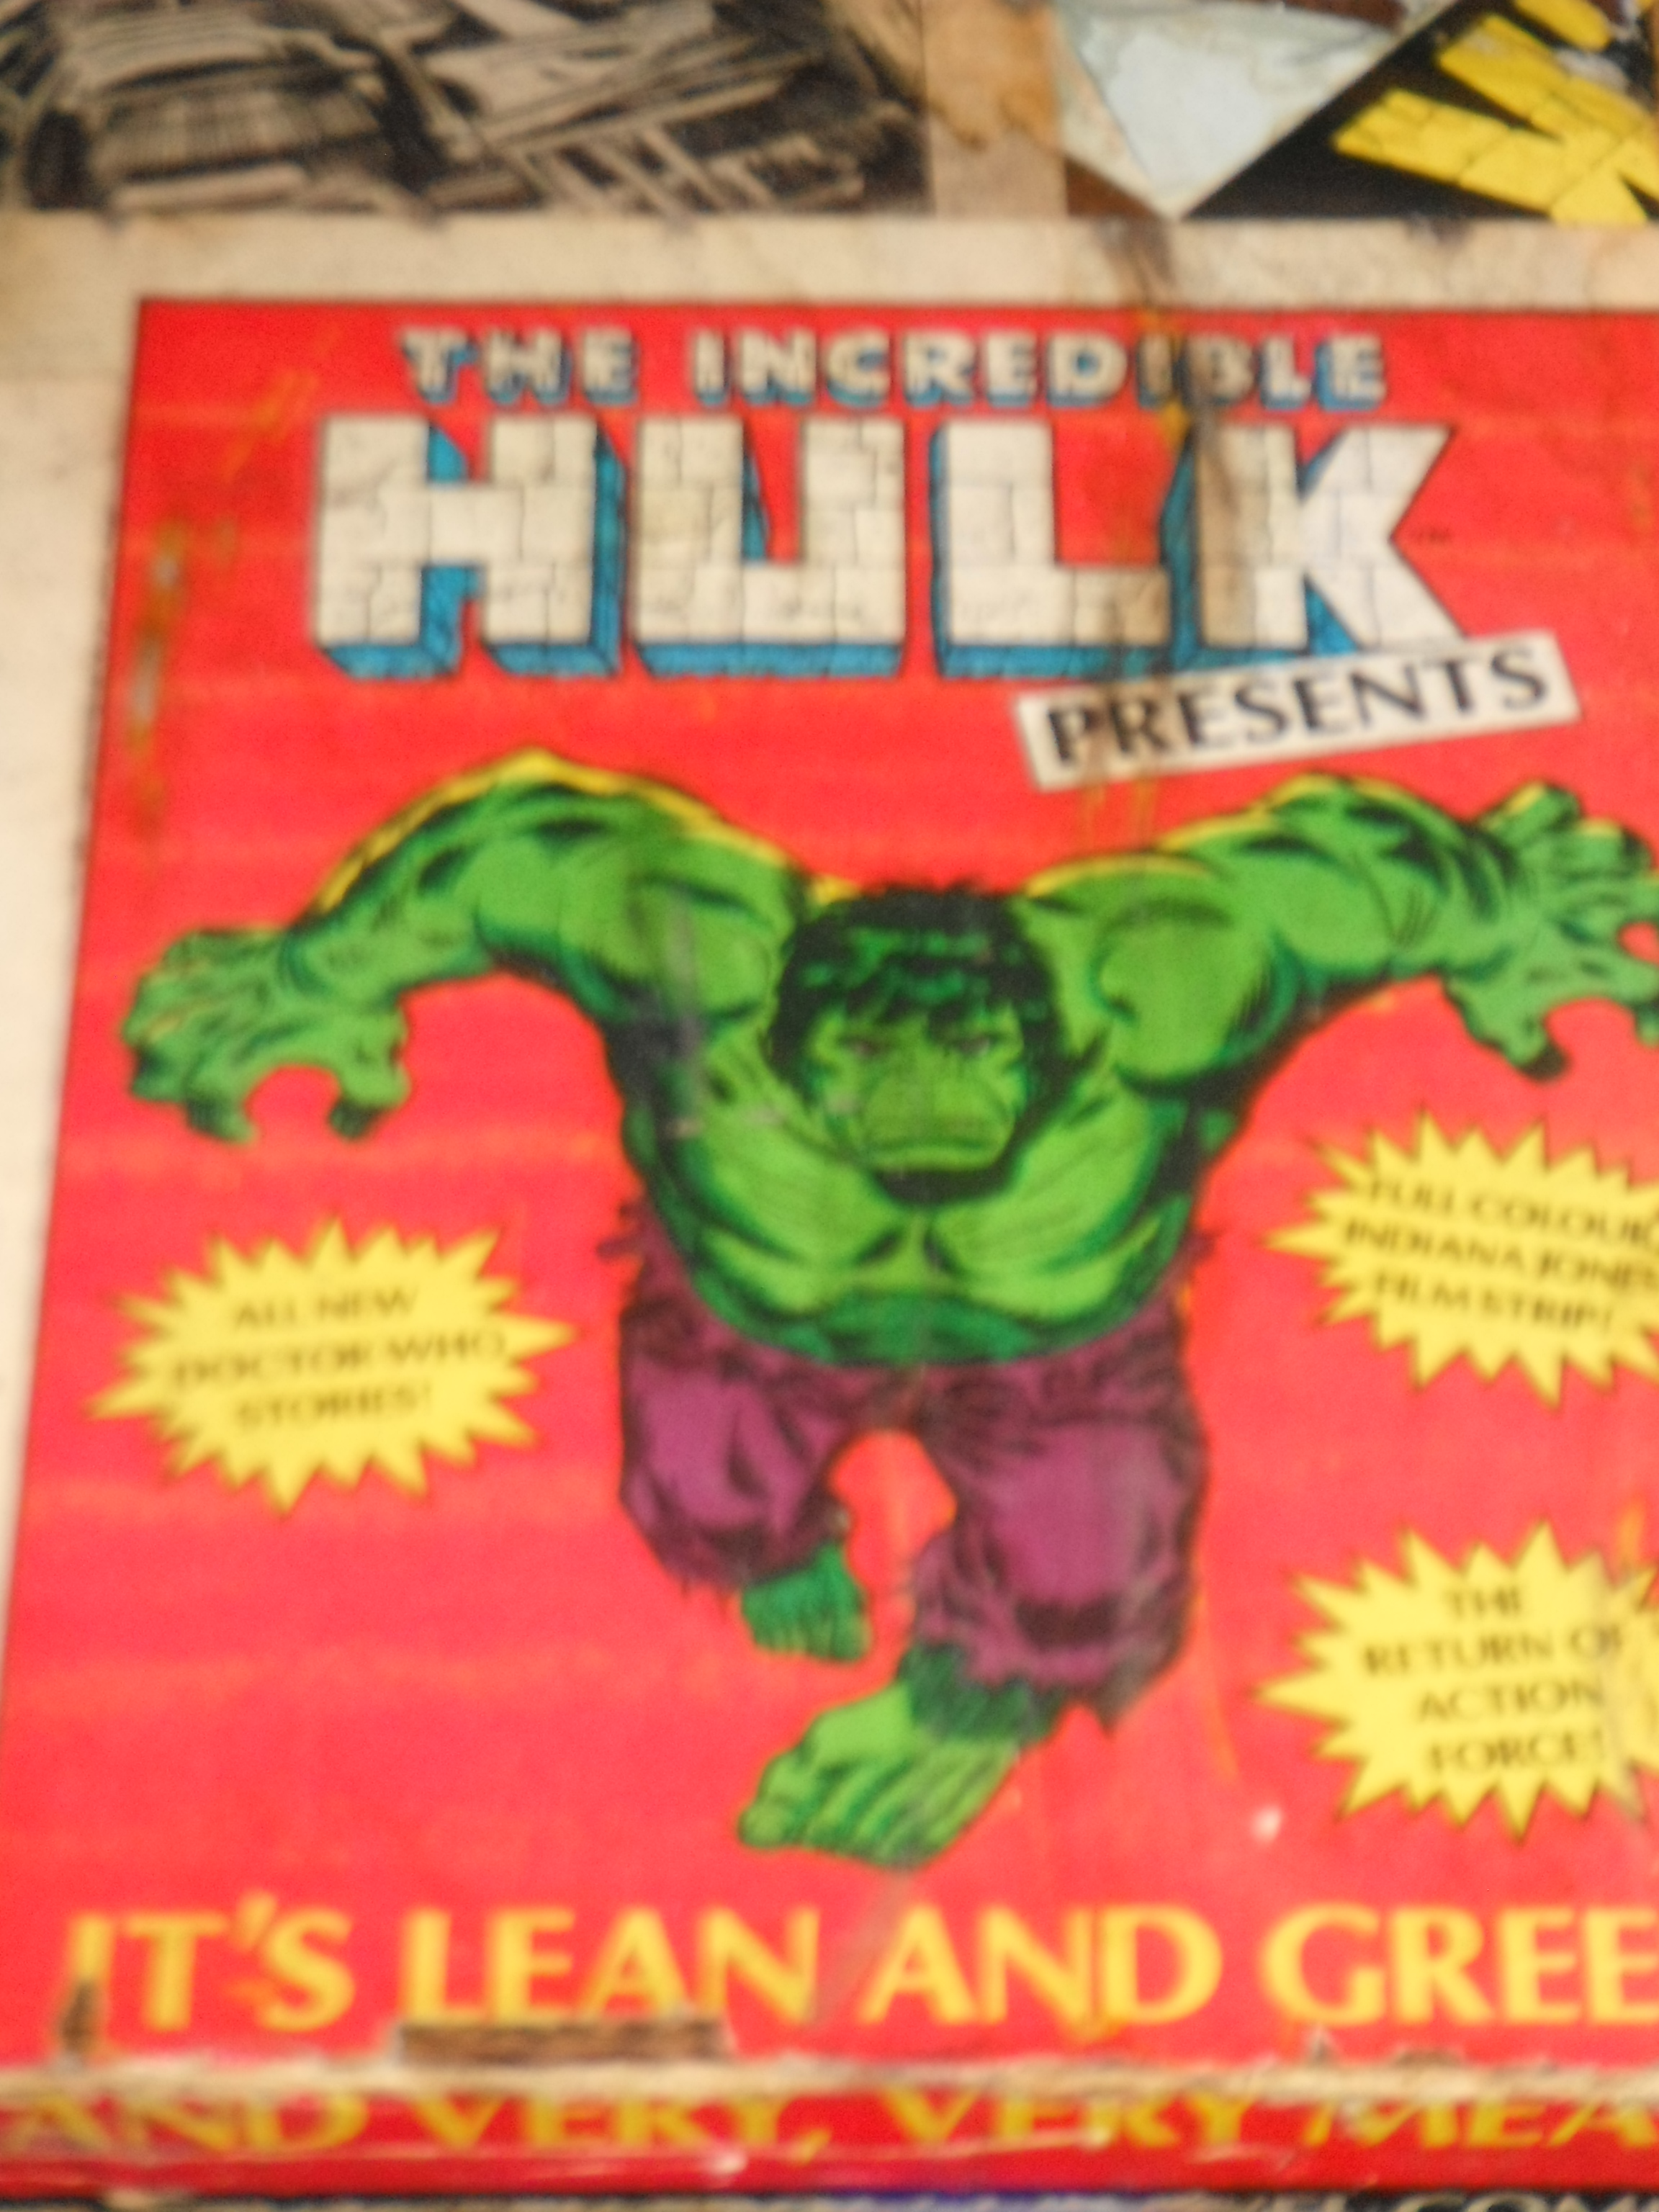 Photo taken by me – Hulk comic table cover, FAB Café, Manchester